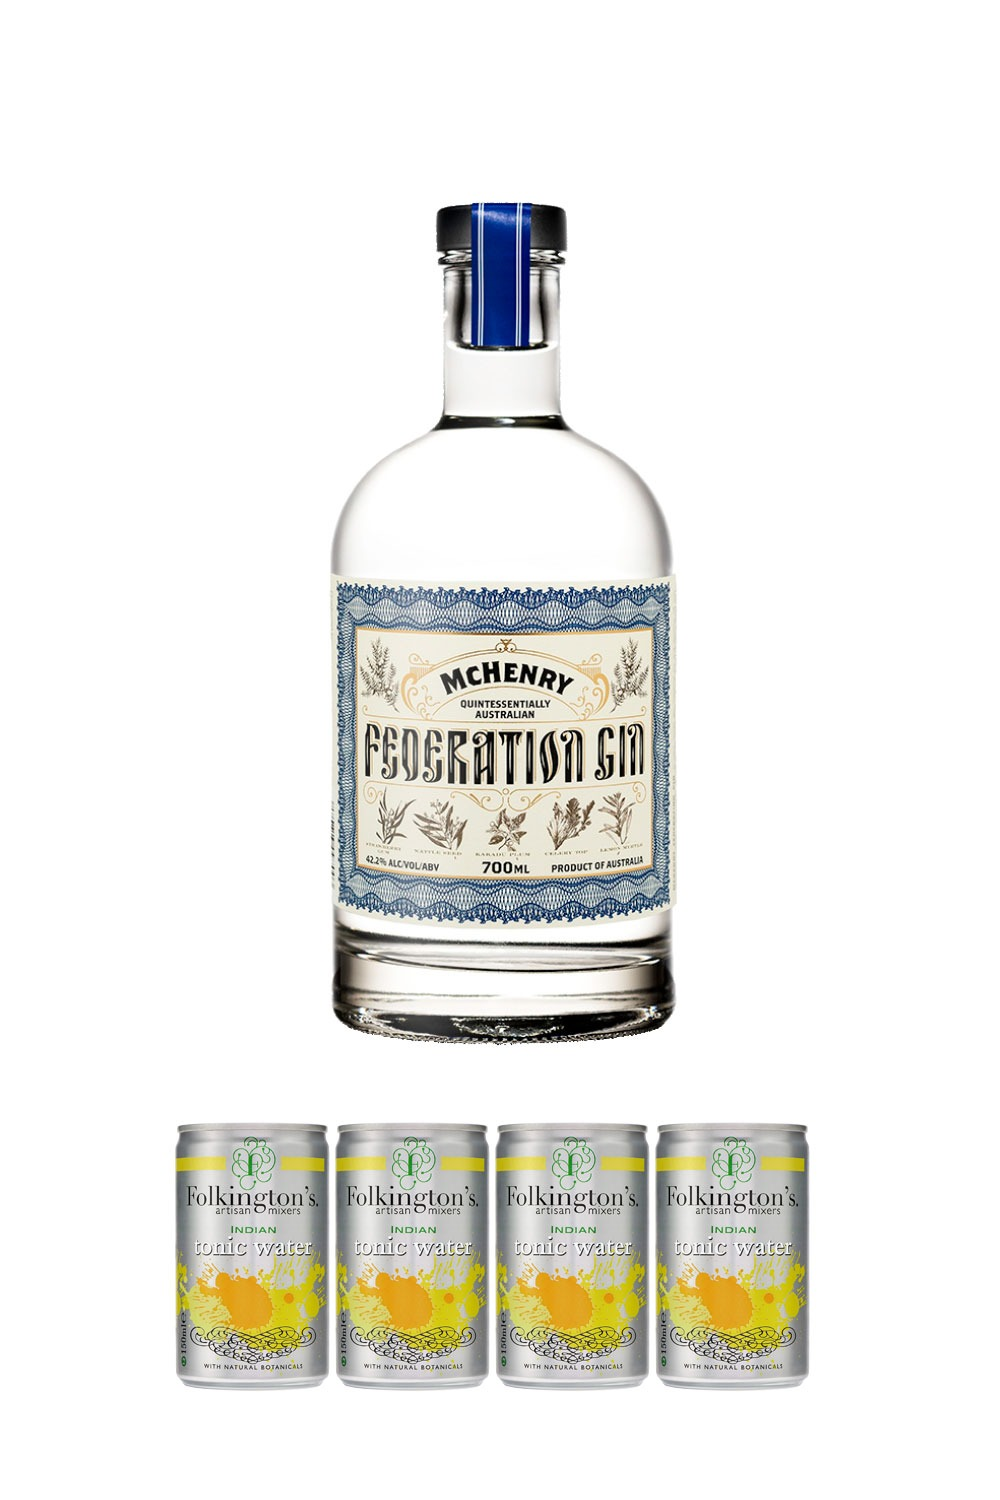 Federation Gin – Easy Home Kit